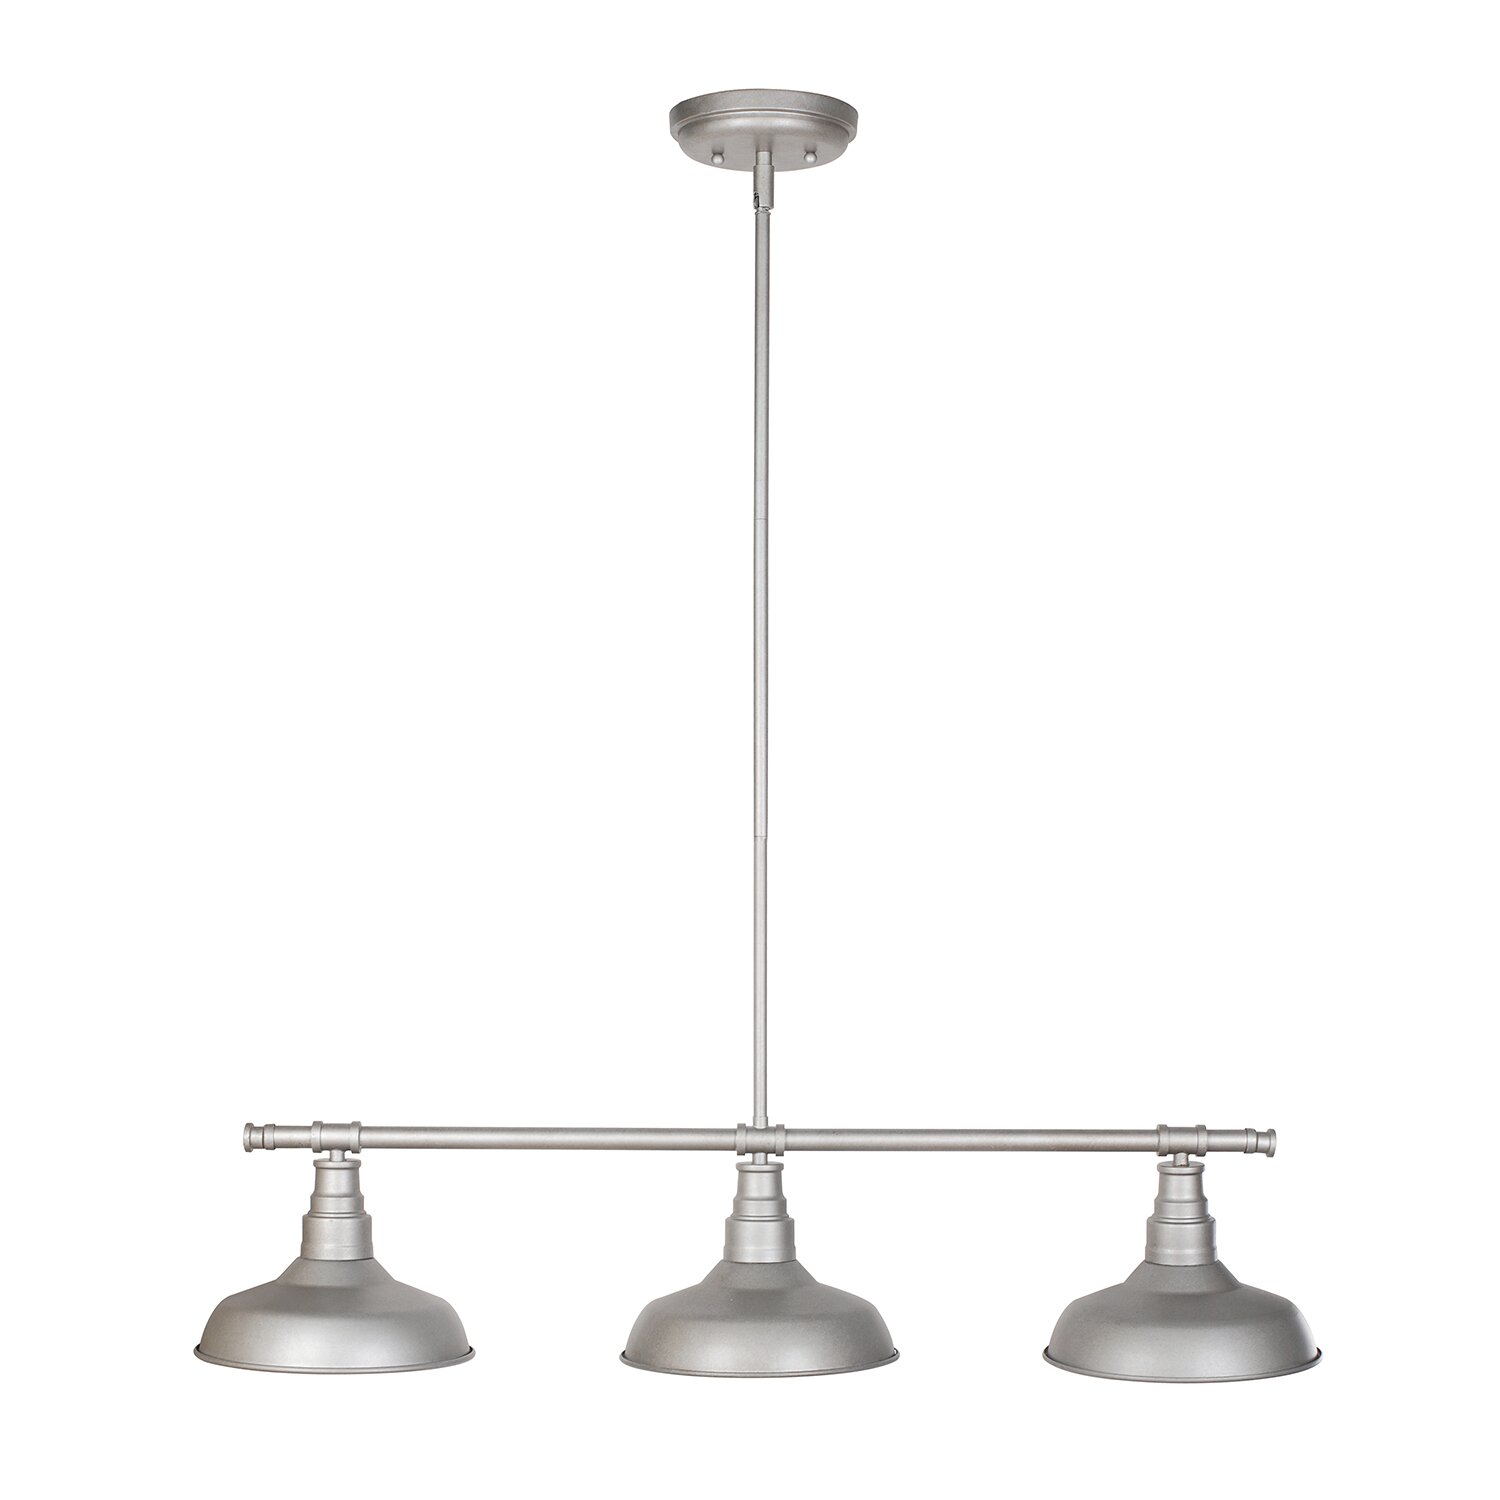 Kitchen Island Lantern Pendants: Design House Kimball 3 Light Kitchen Island Pendant & Reviews